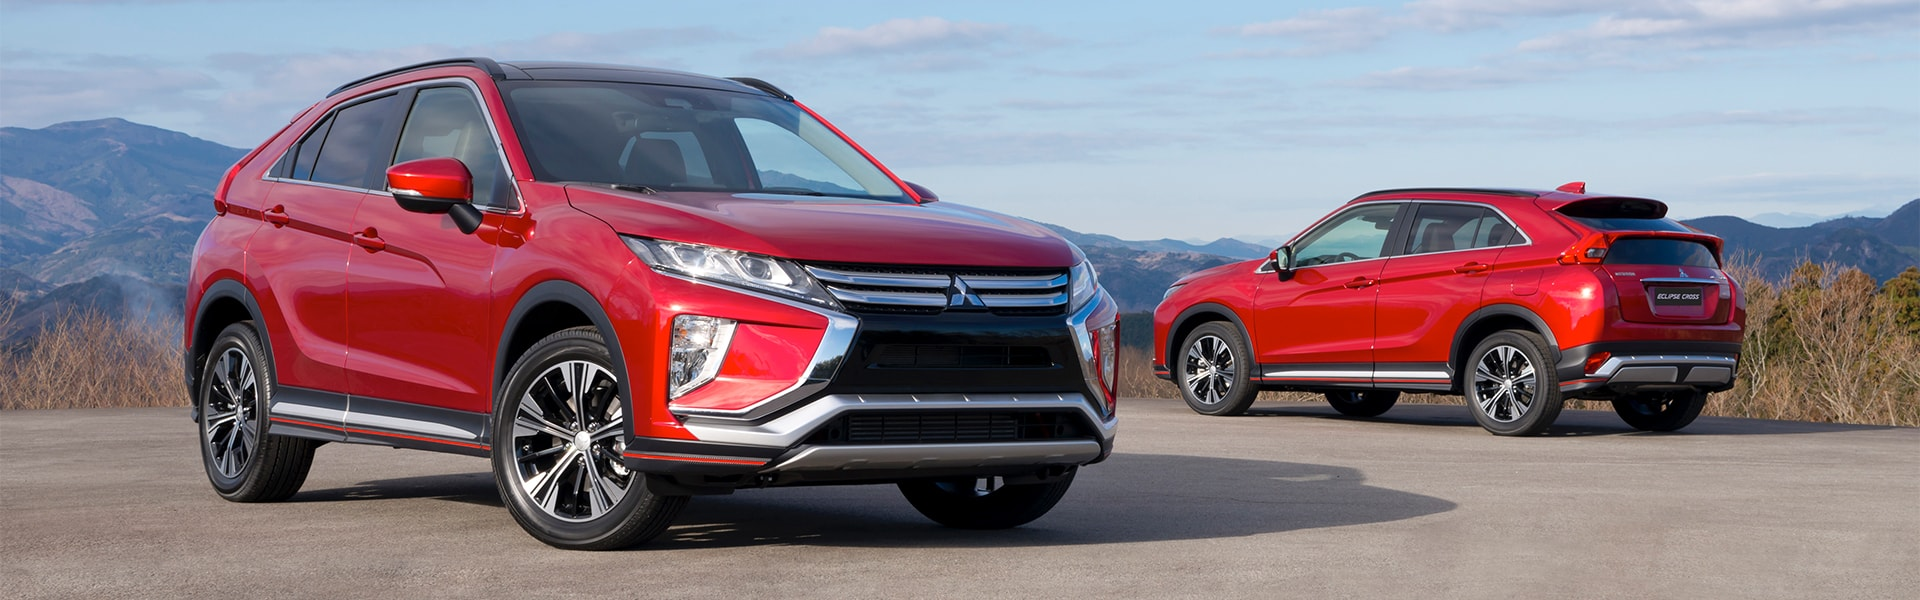 2018 mitsubishi gto.  mitsubishi rally red 2018 mitsubishi eclipse cross in sunlight for mitsubishi gto